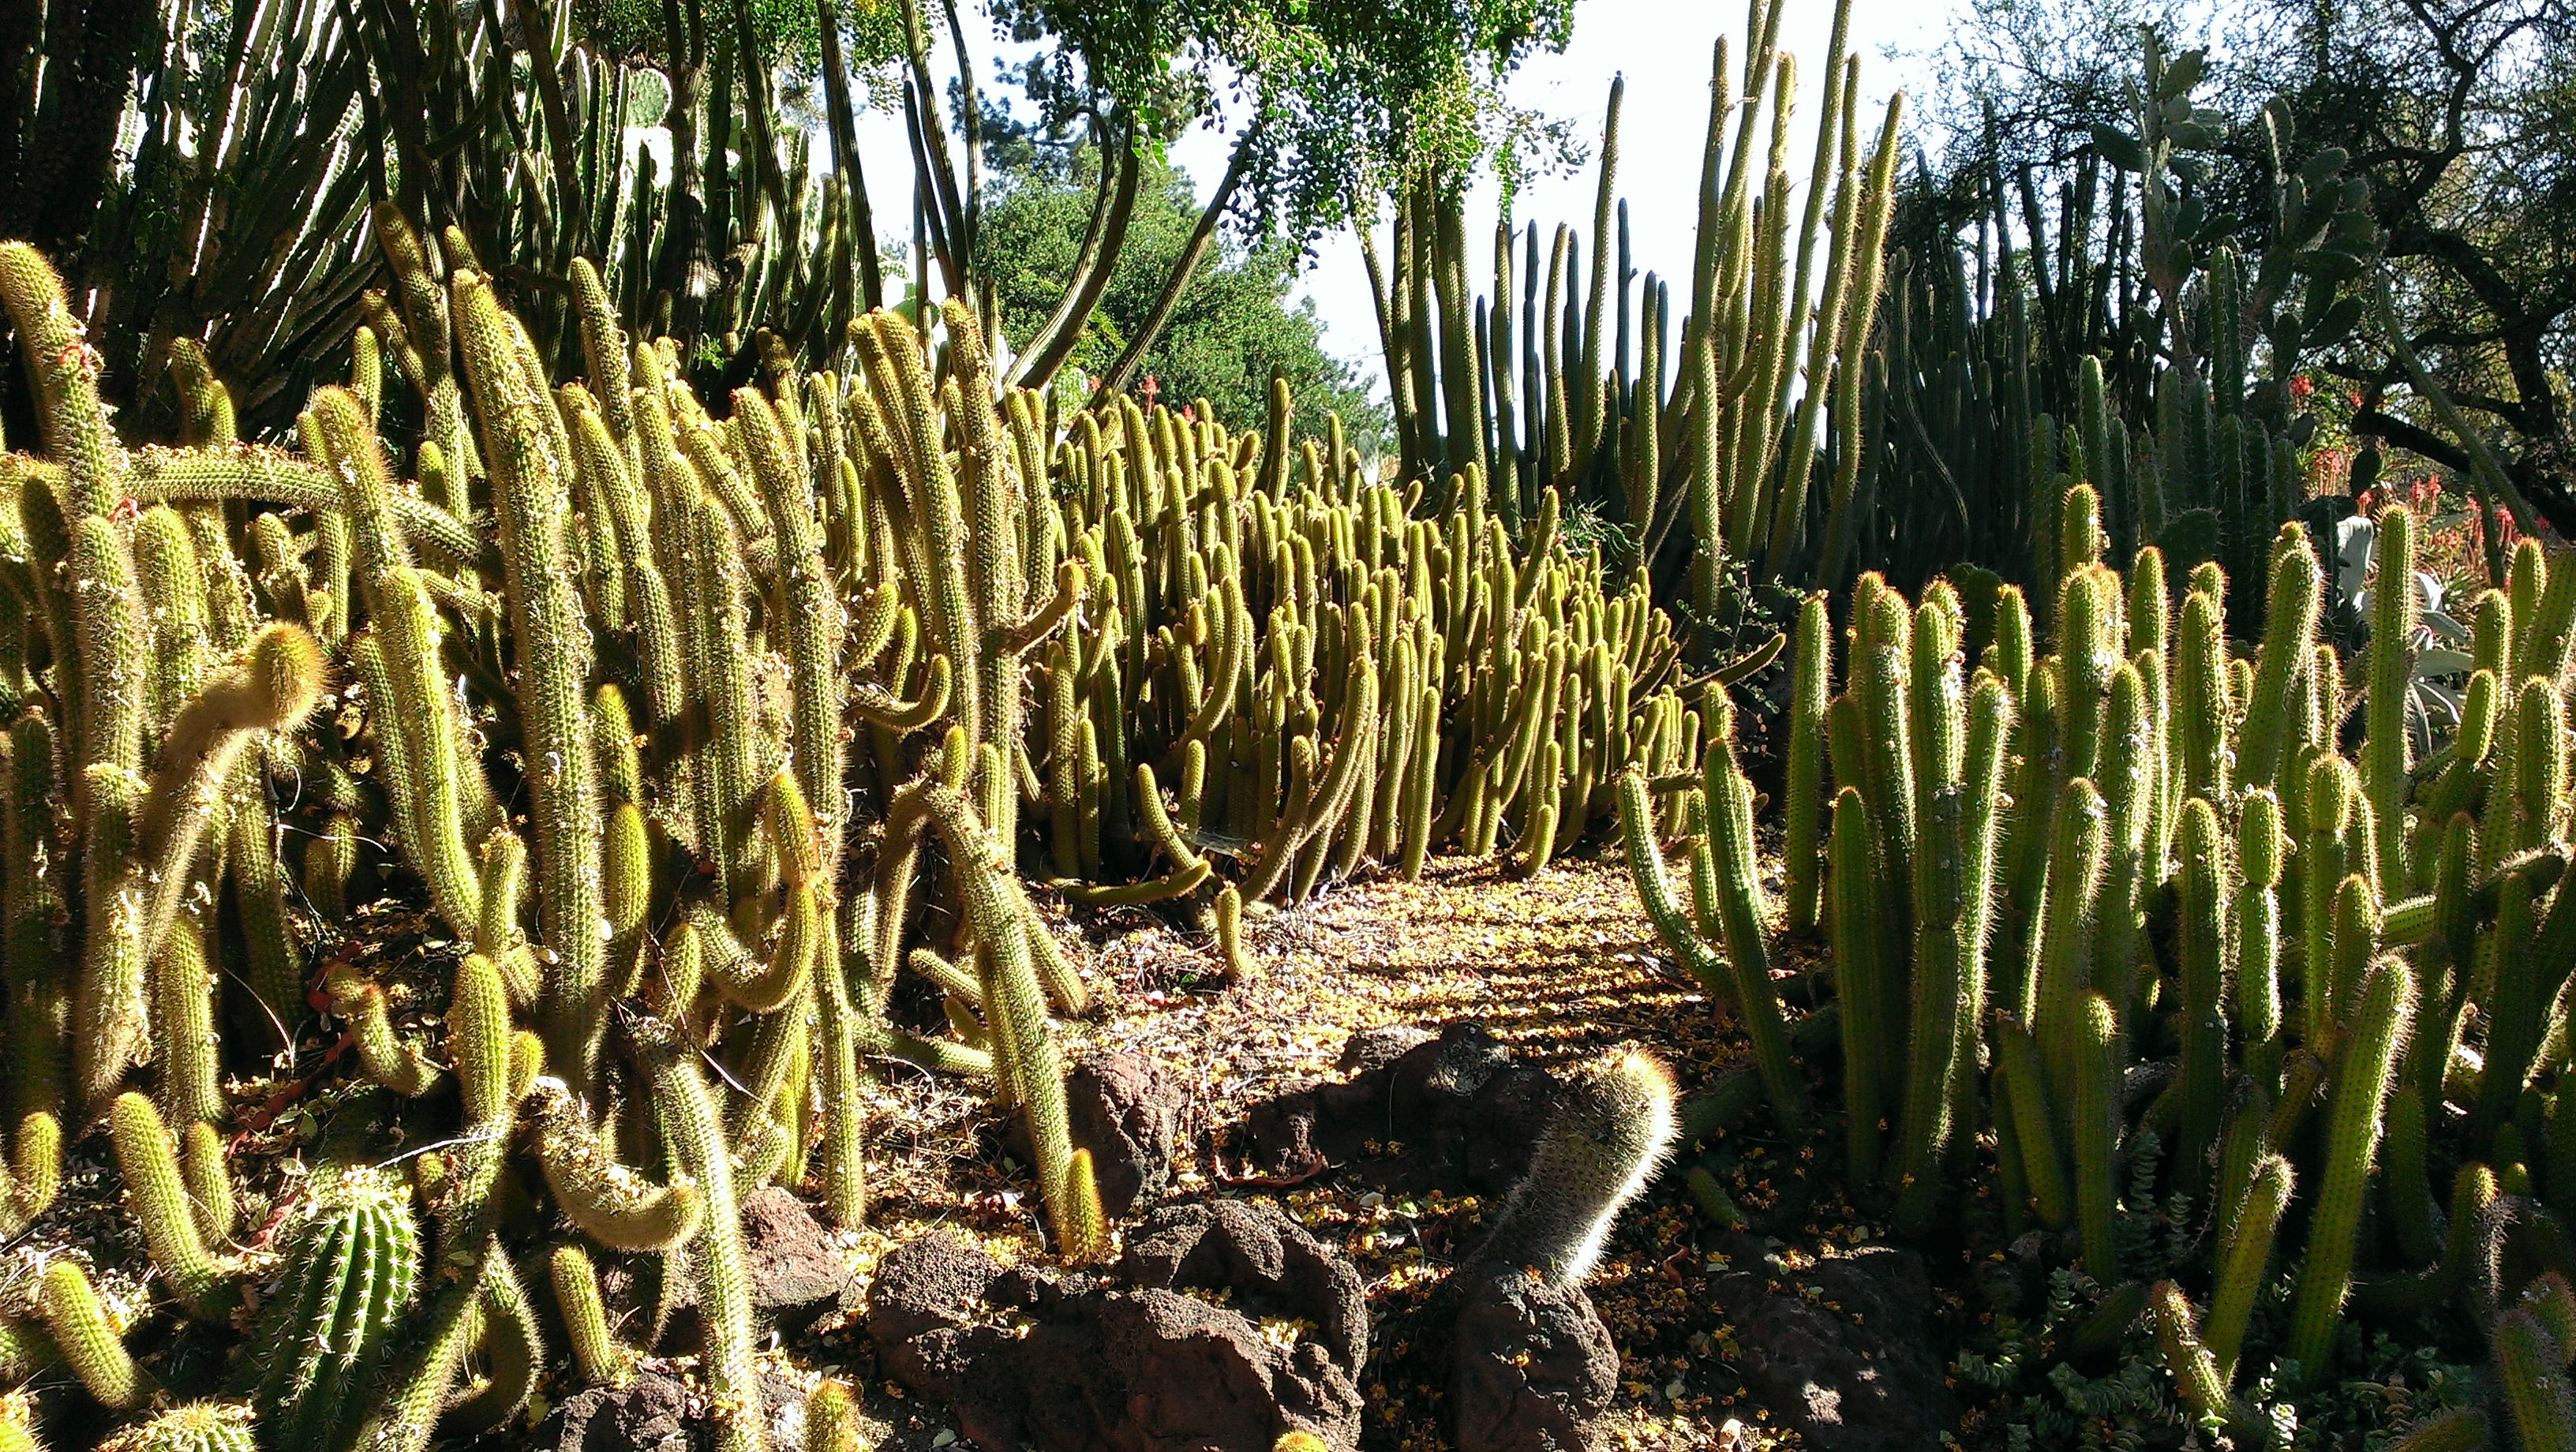 Cacti mound at Huntington Library Art Collections and Botanical Gardens